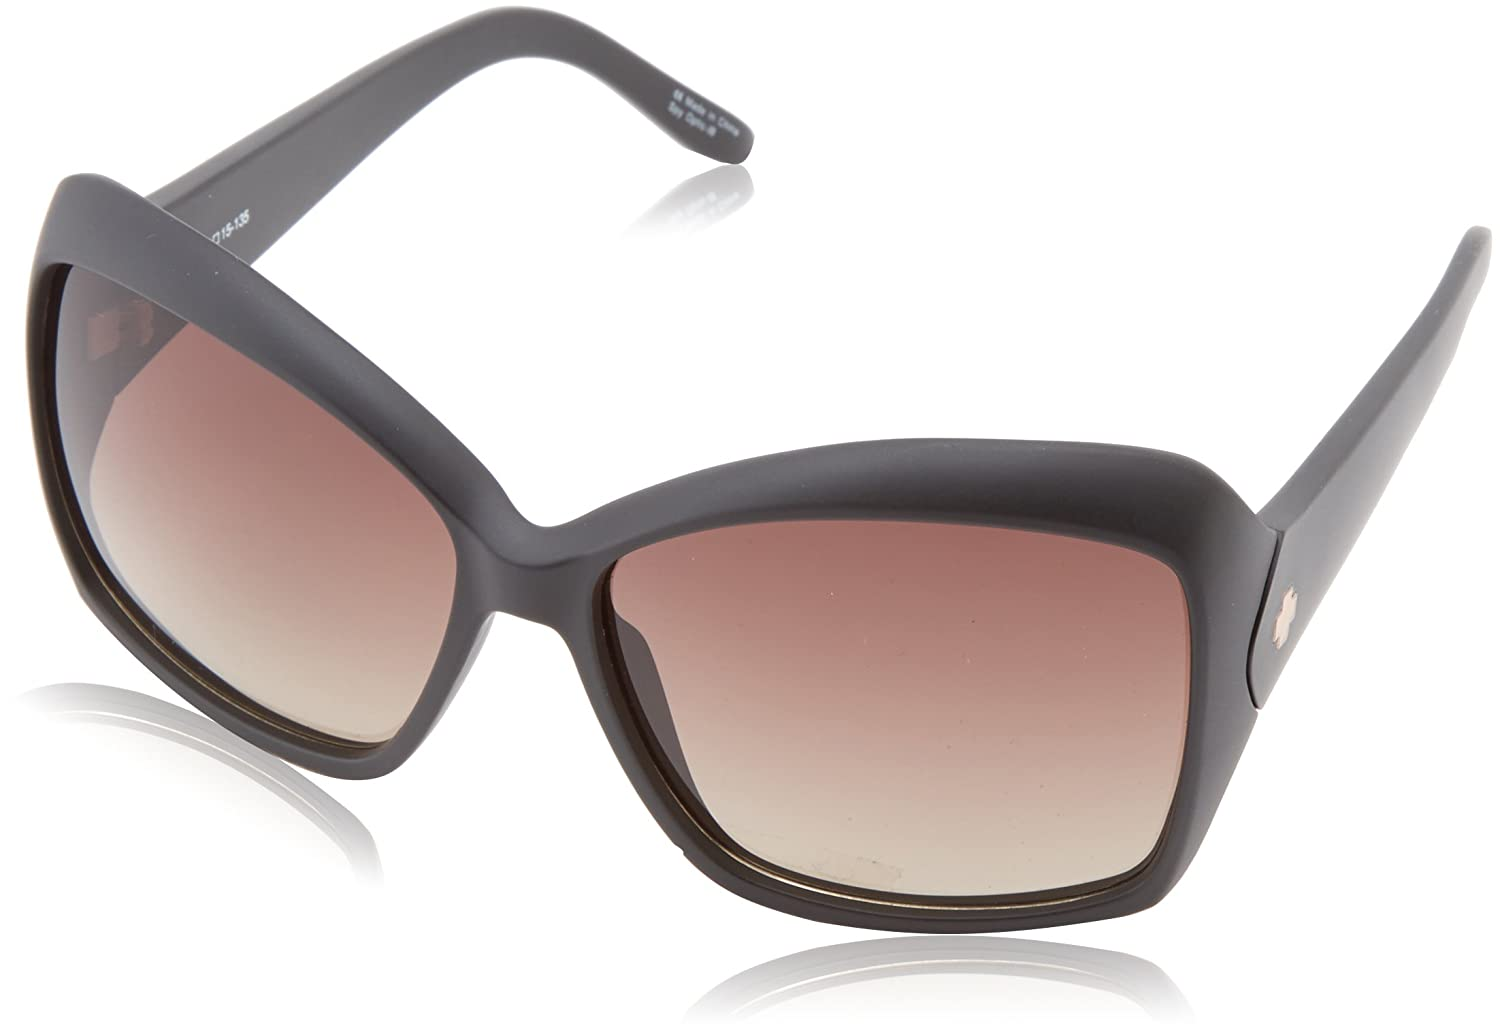 Amazon.com: Spy Optics Mujer Miel Femme Fatale Cateye ...